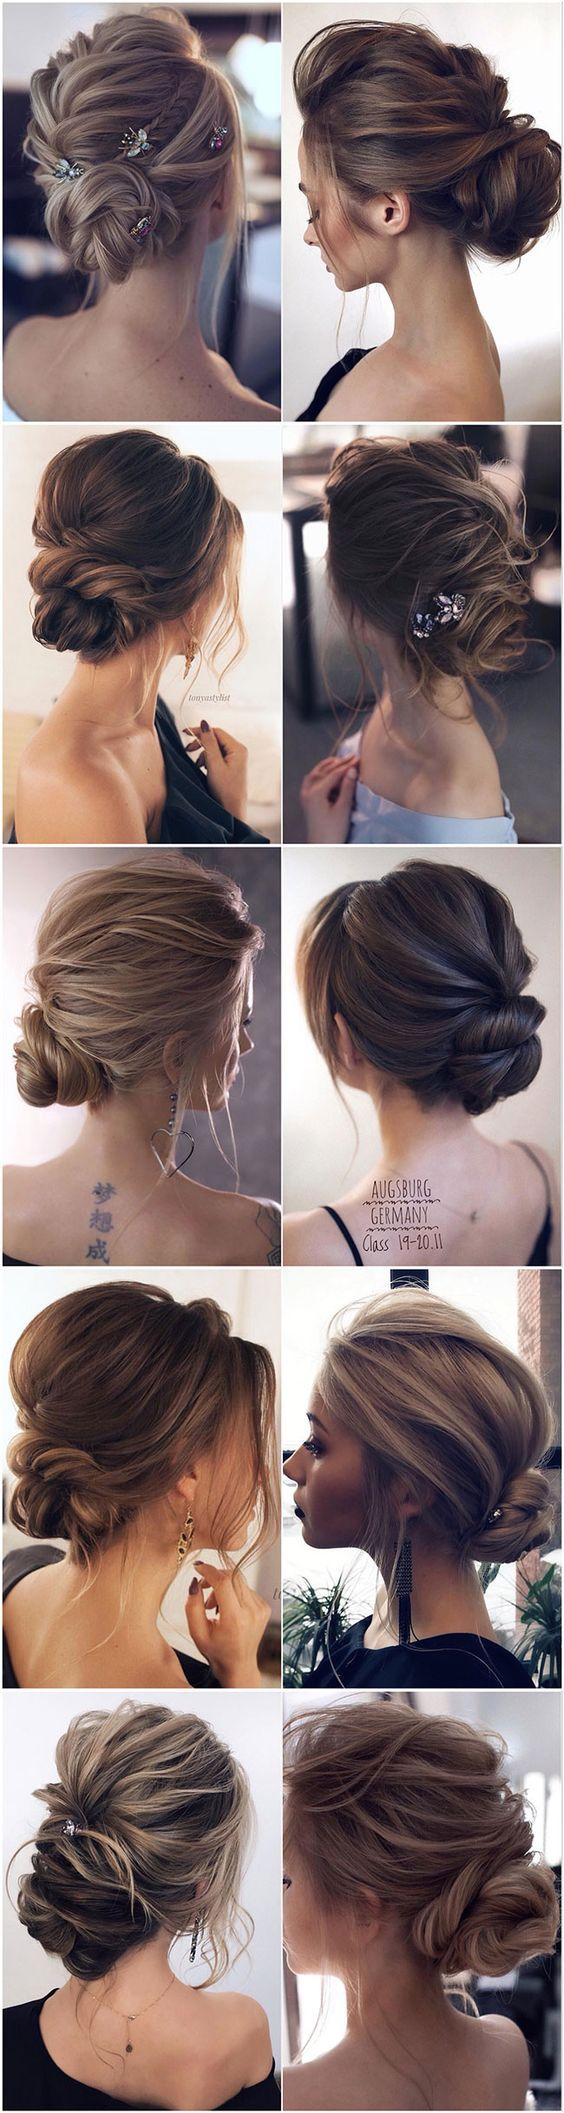 updo hairstyles for this prom season updo hairstyles